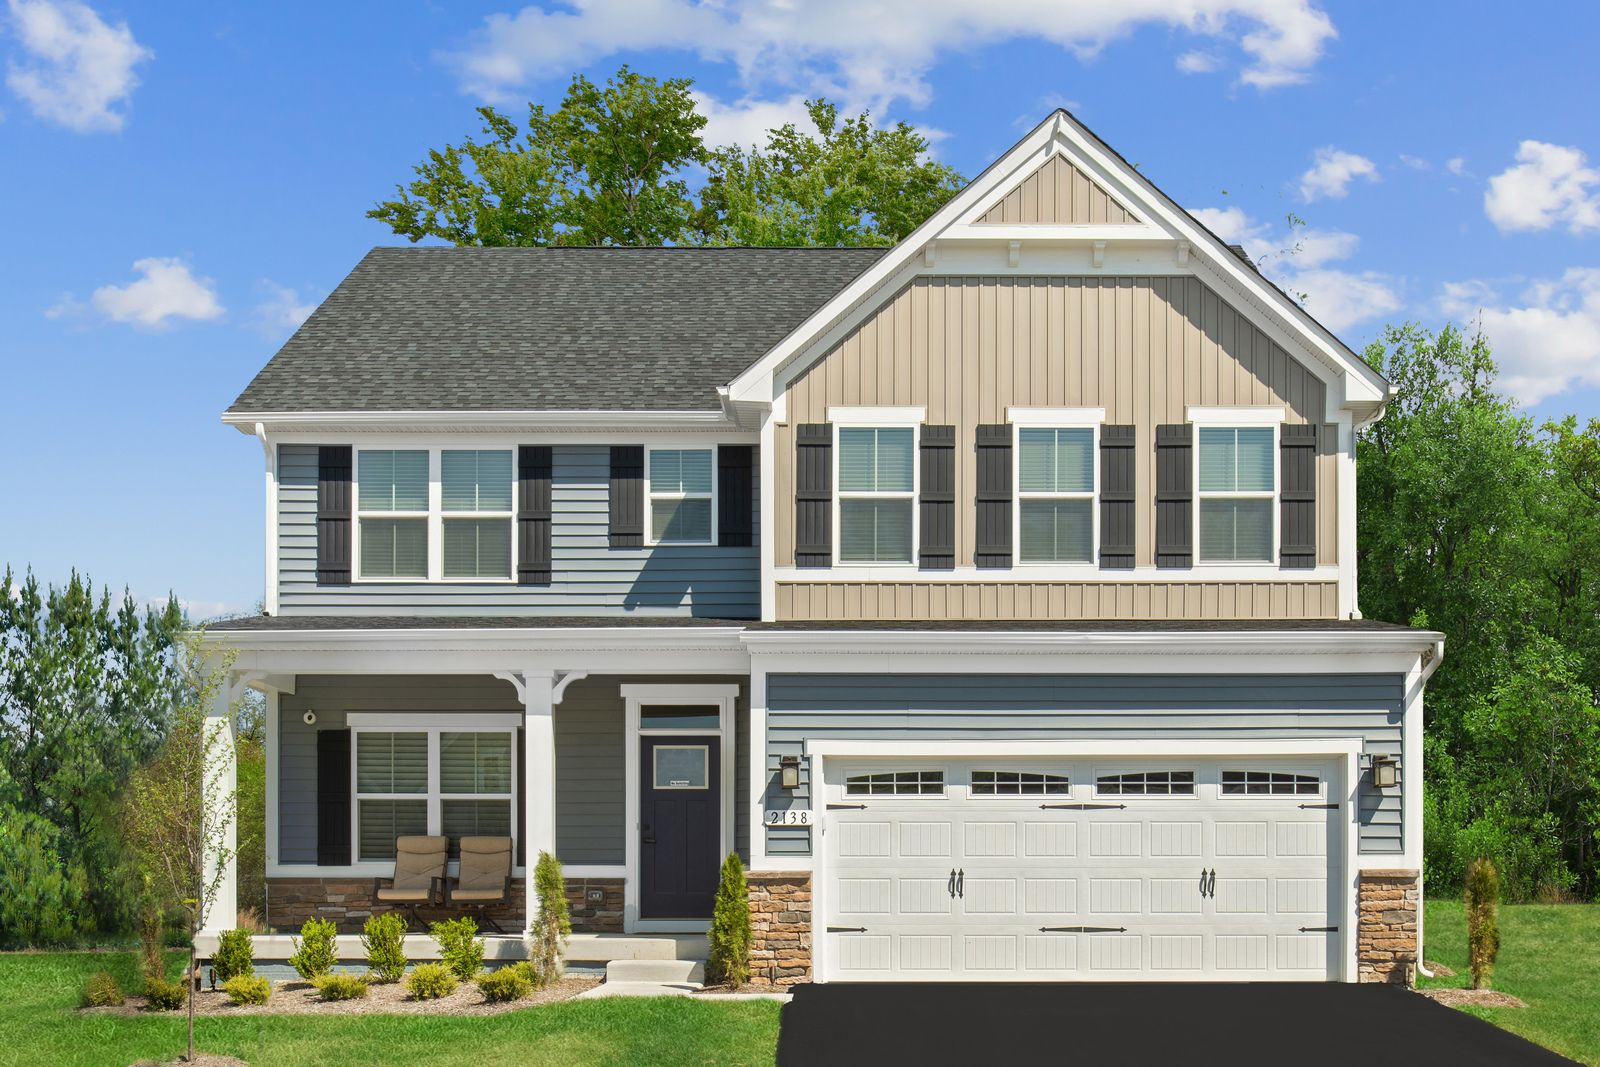 welcome to blackburn:Spacious single-family homes in the ideal commuter location off I-66 & 234 with amenities, close to shopping & dining from the mid $600s!Schedule your visit today.